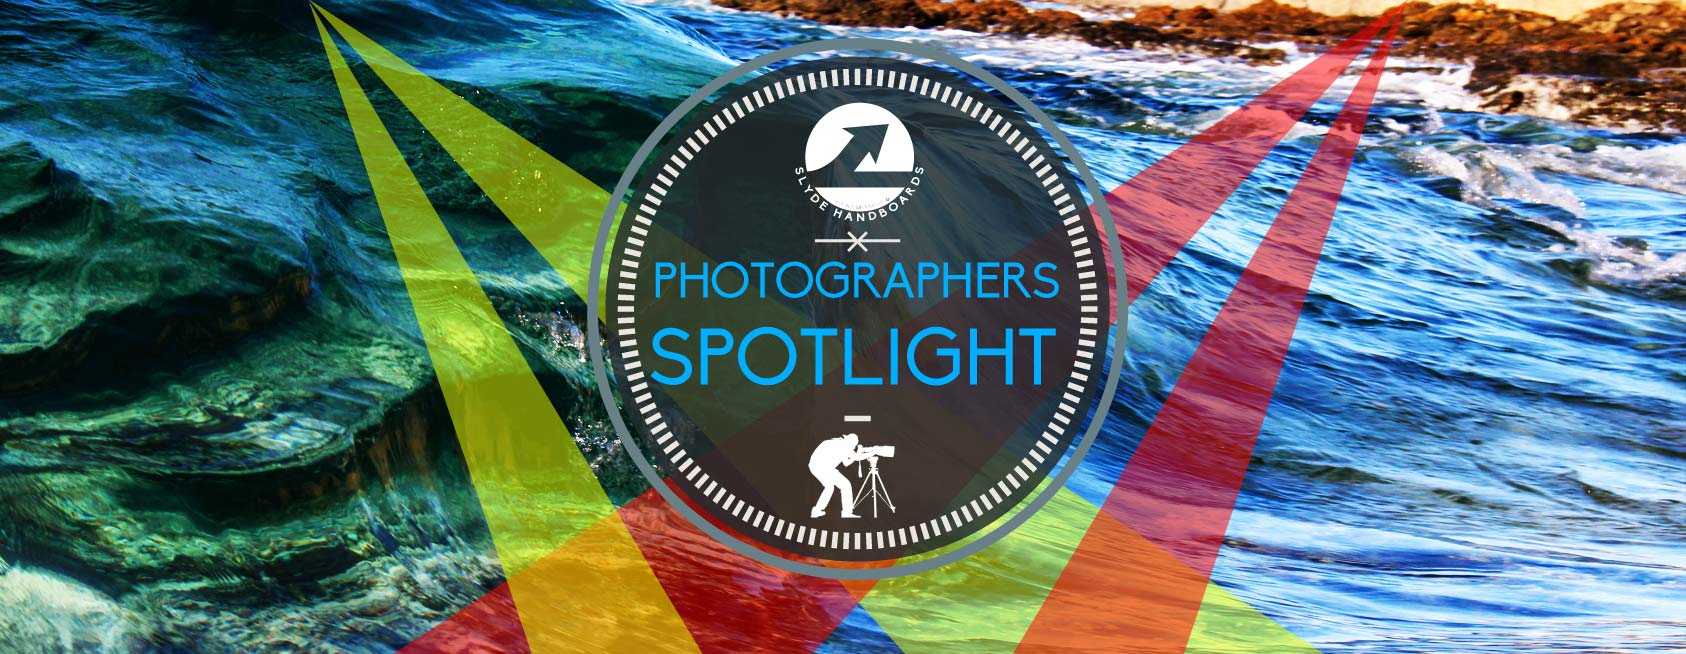 PHOTOGRAPHERS SPOTLIGHT SERIES